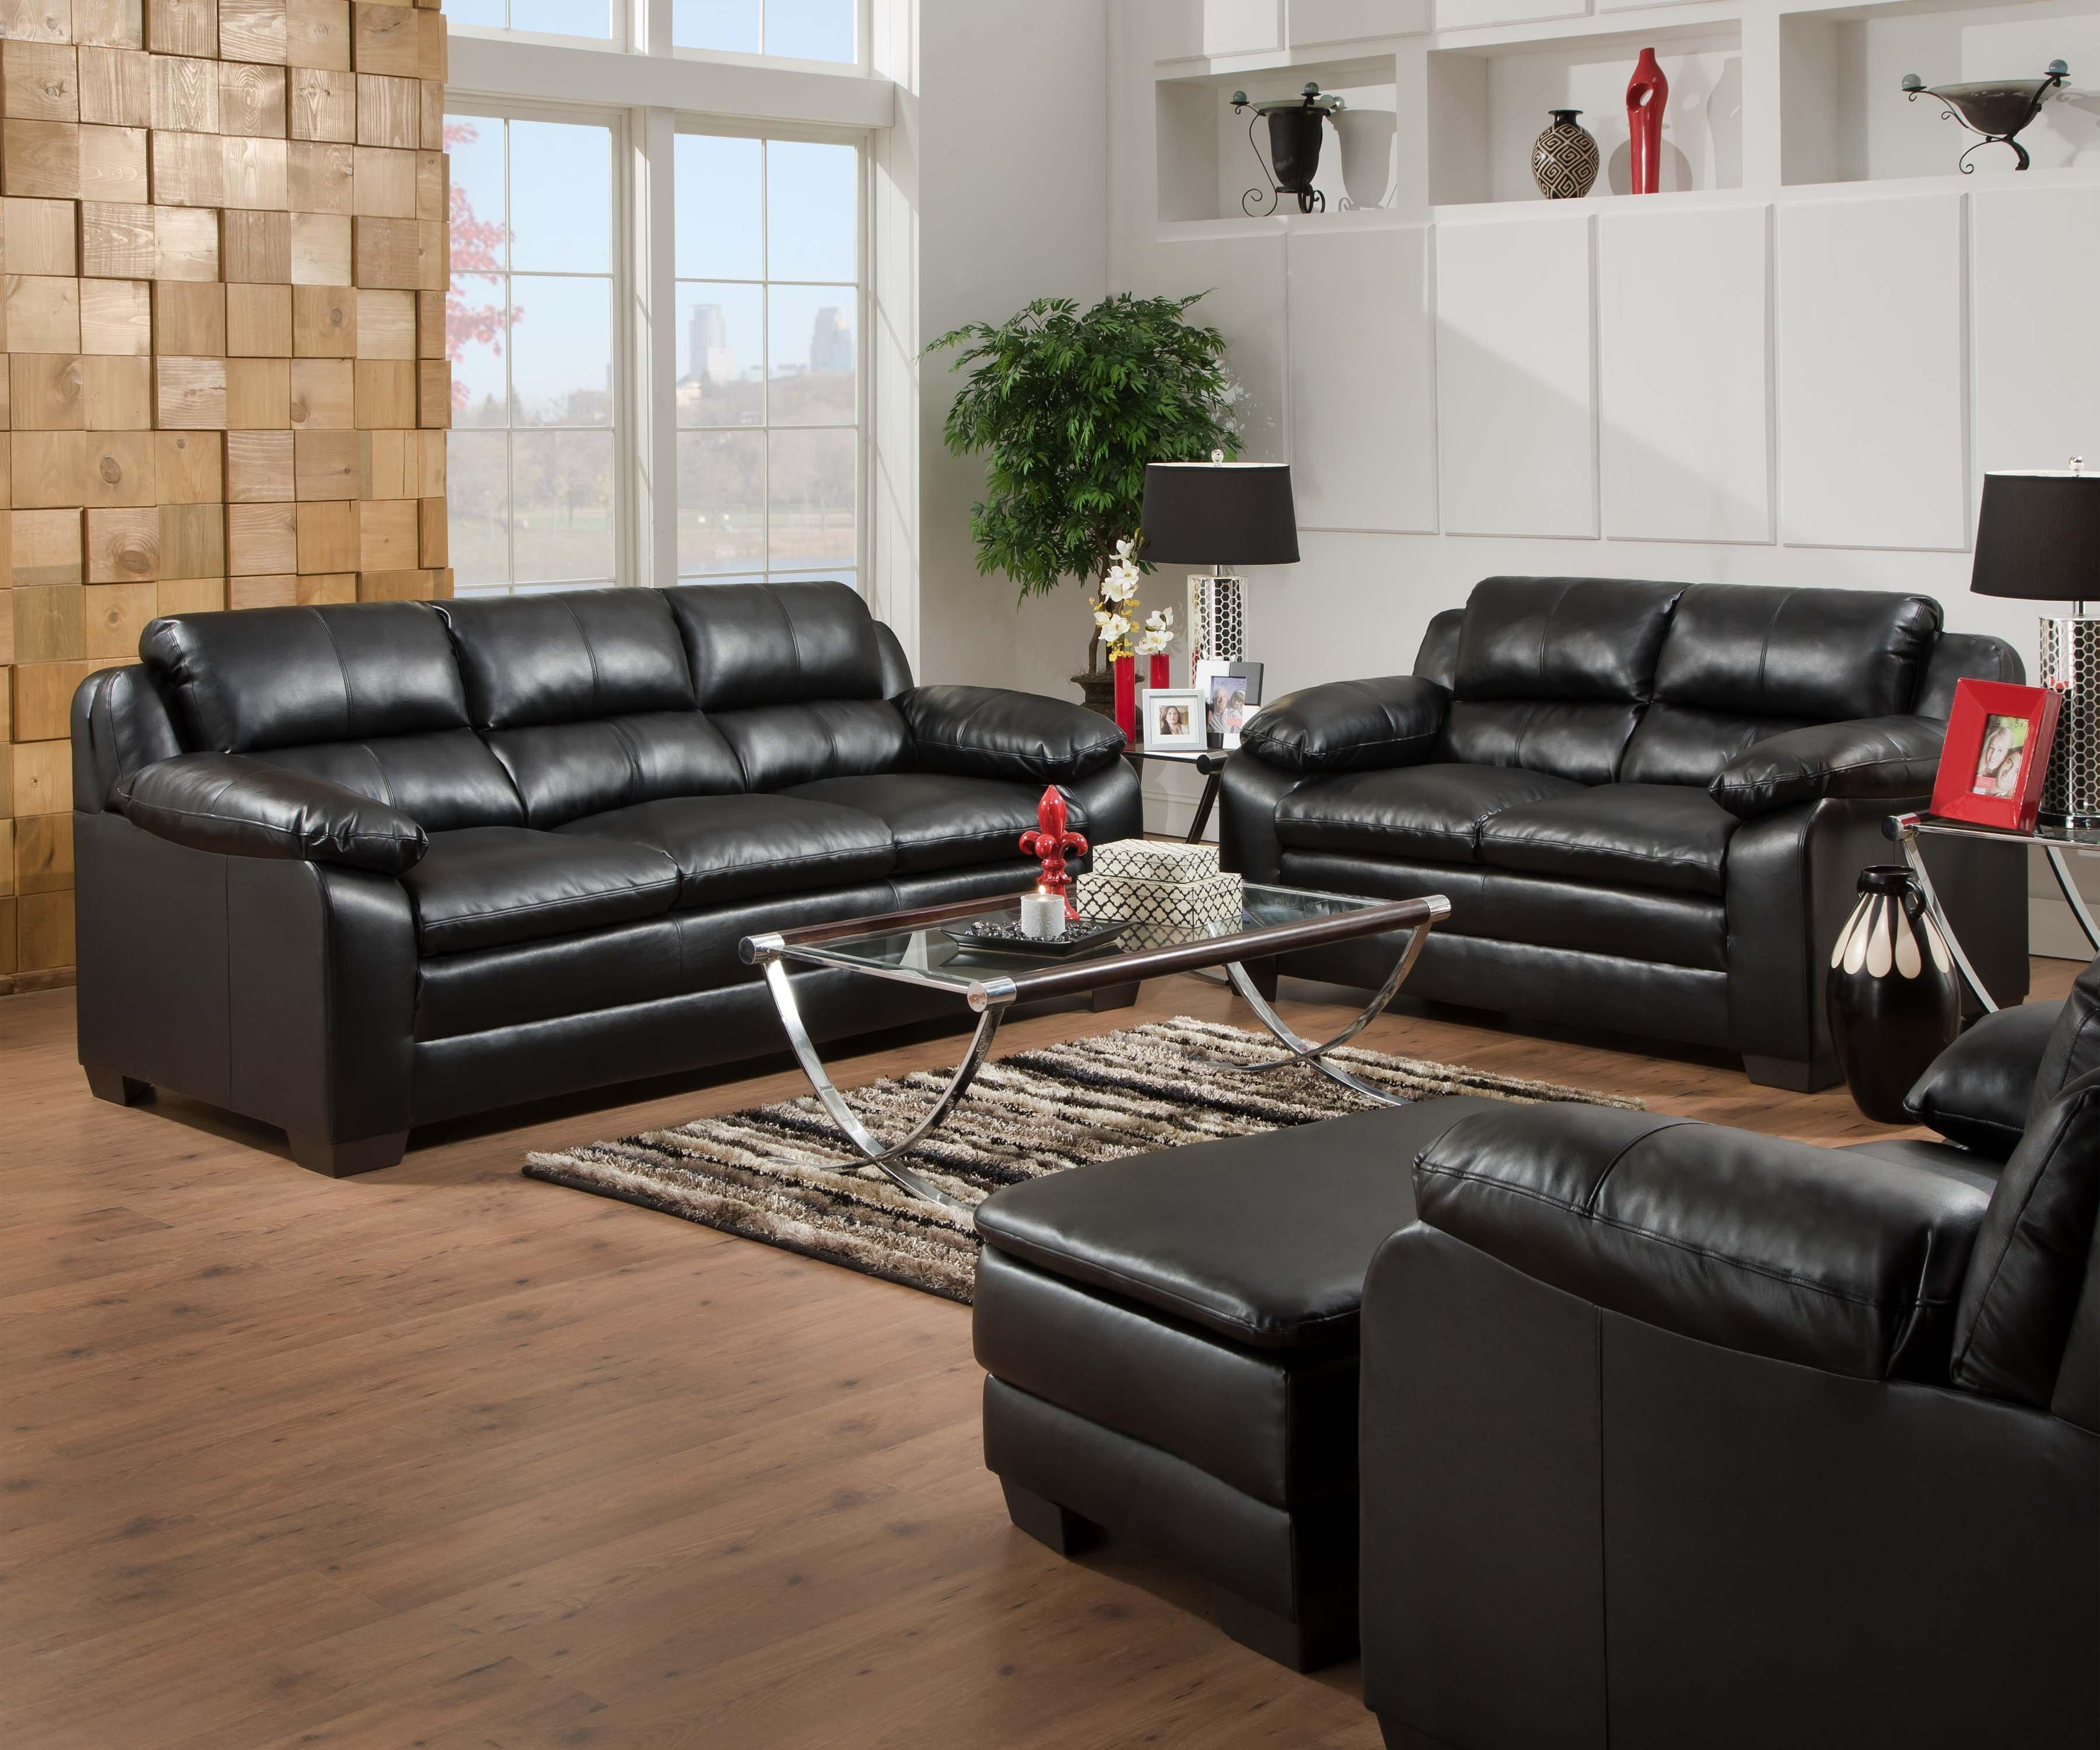 United Furniture Industries 5066 Stationary Sofa and Loveseat Group - Item Number: 5066 Living Room Group 1